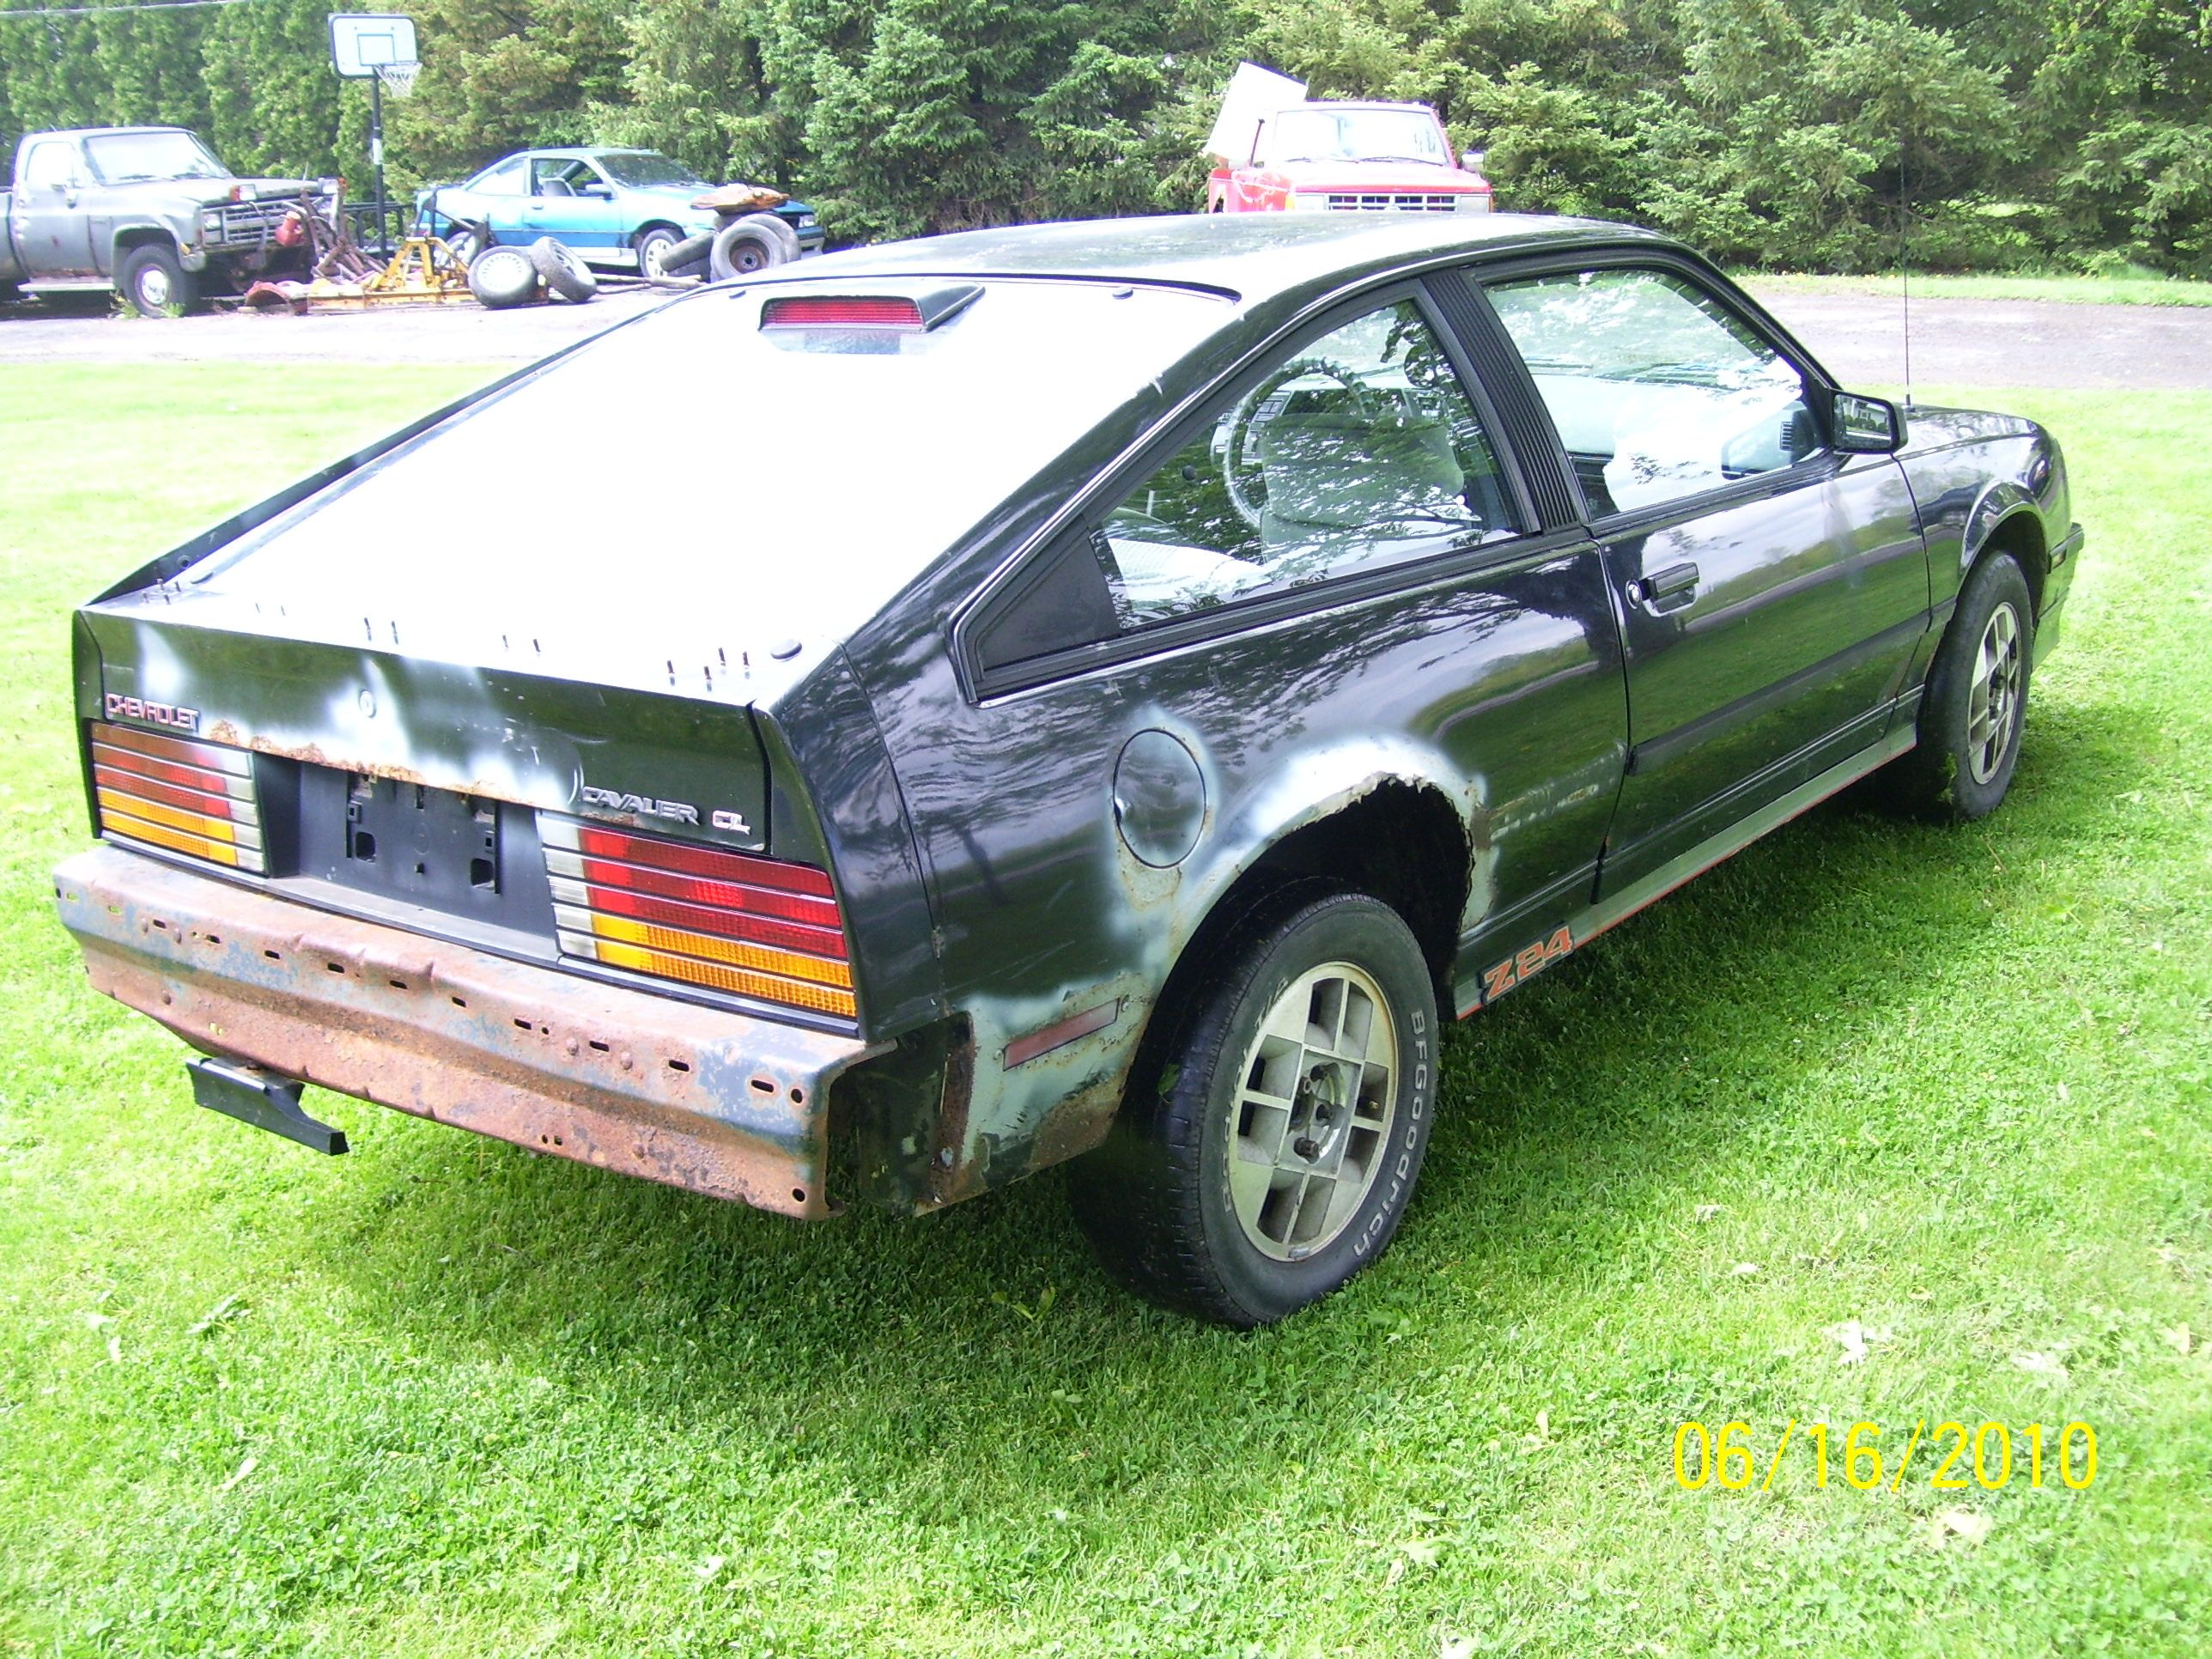 Hatchbackman S 1987 Chevrolet Cavalier Z24 Hatchback Dream Cars Vehicles Car